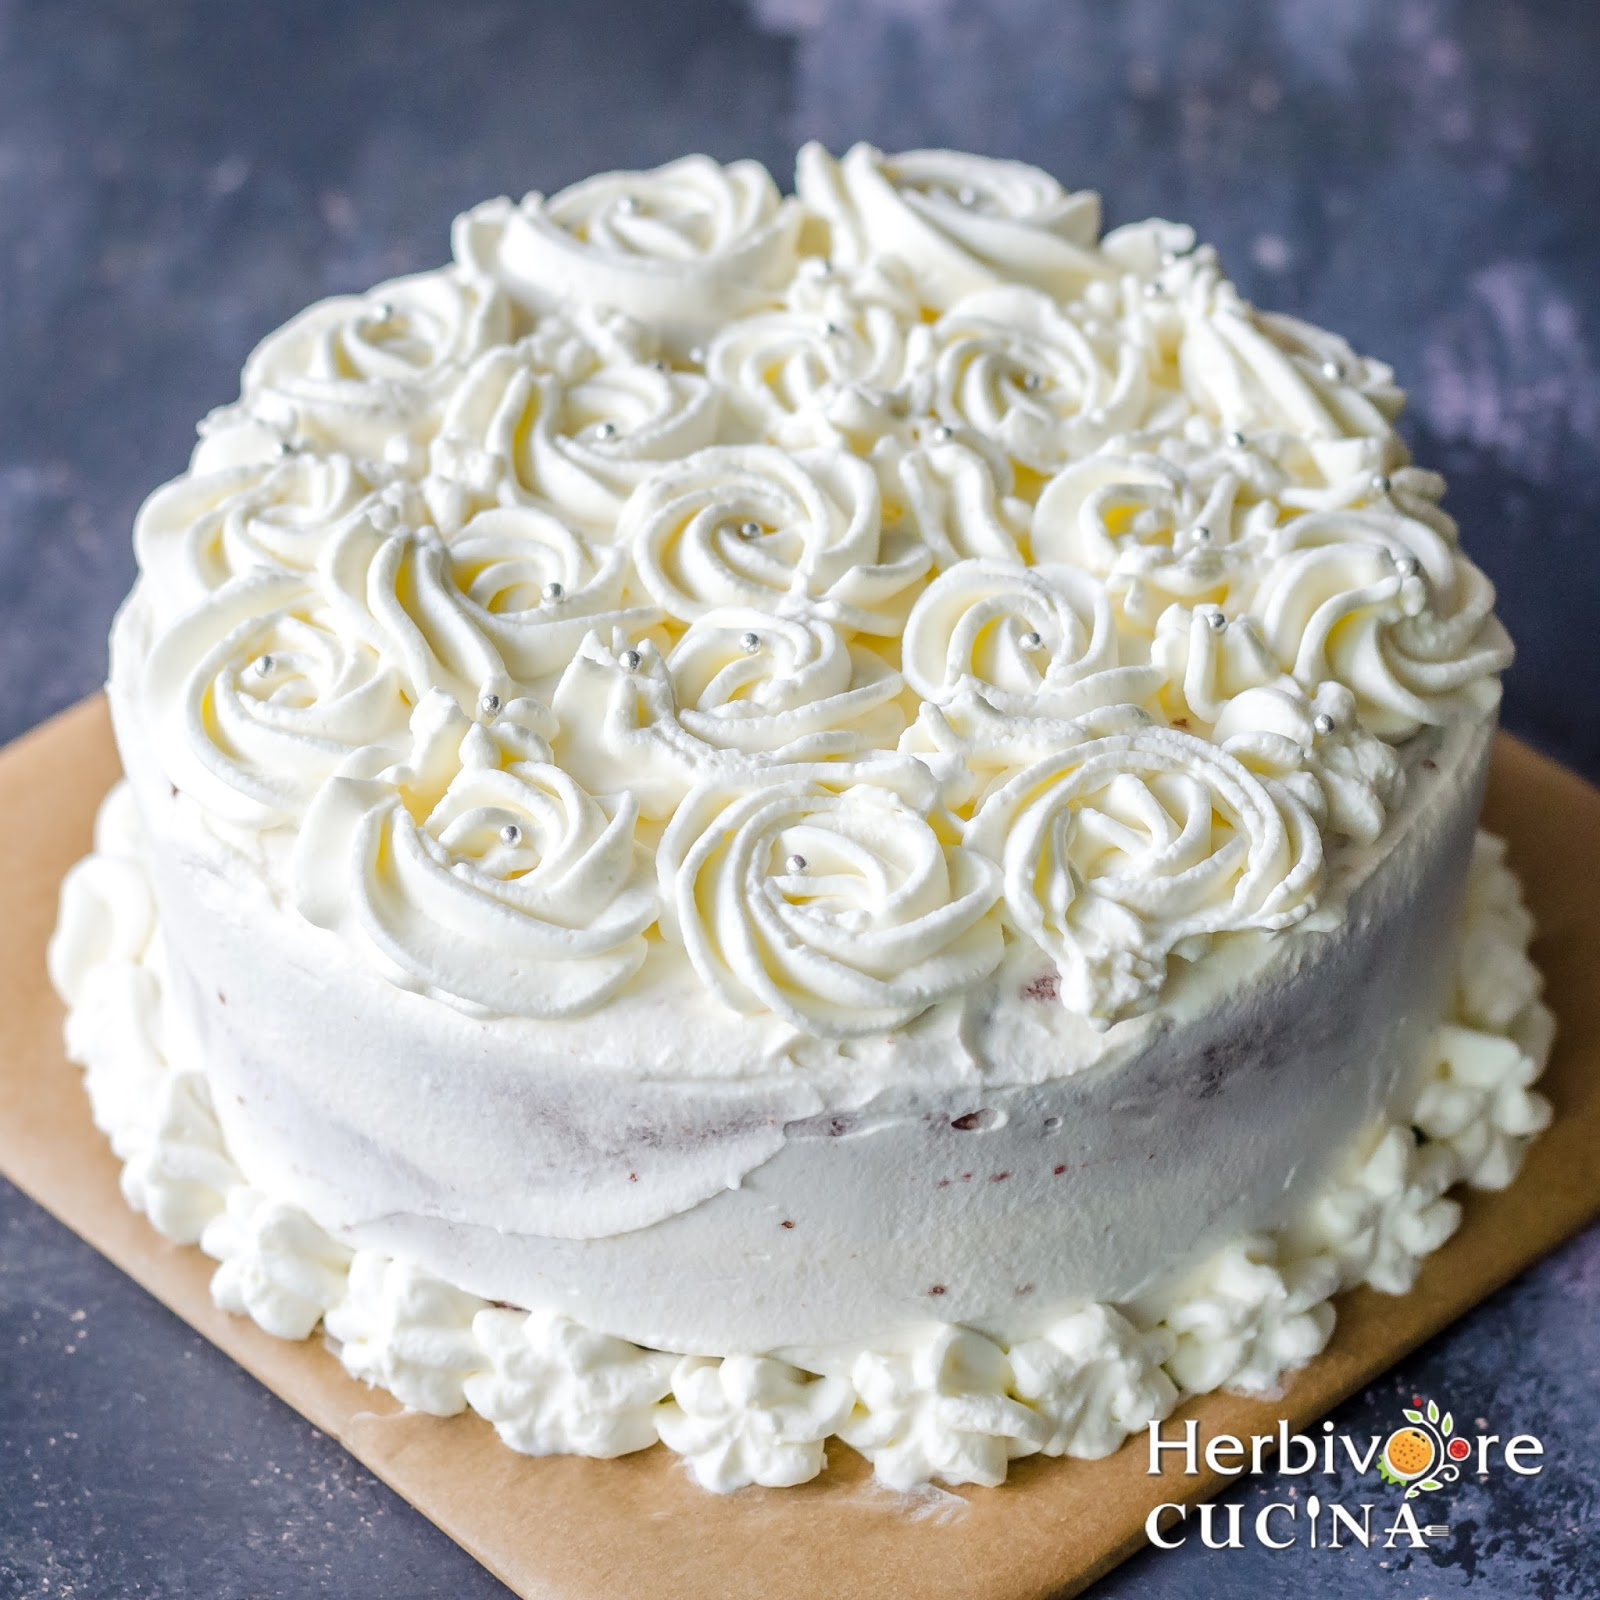 Cake Icing Using Whipping Cream